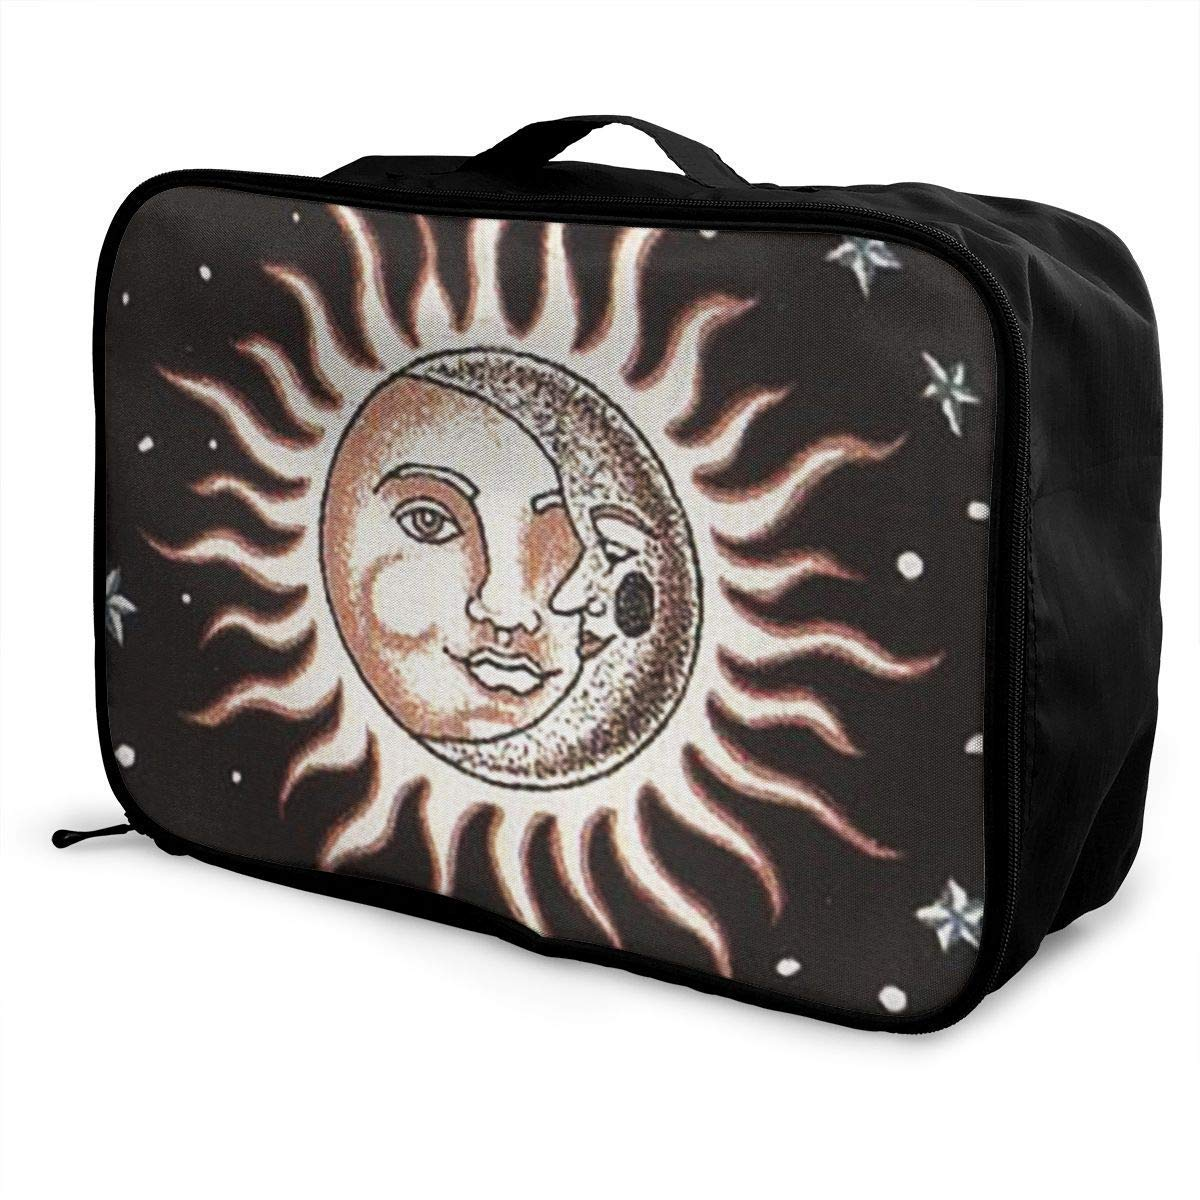 Portable Luggage Duffel Bag Sun and Moon Travel Bags Carry-on in Trolley Handle JTRVW Luggage Bags for Travel